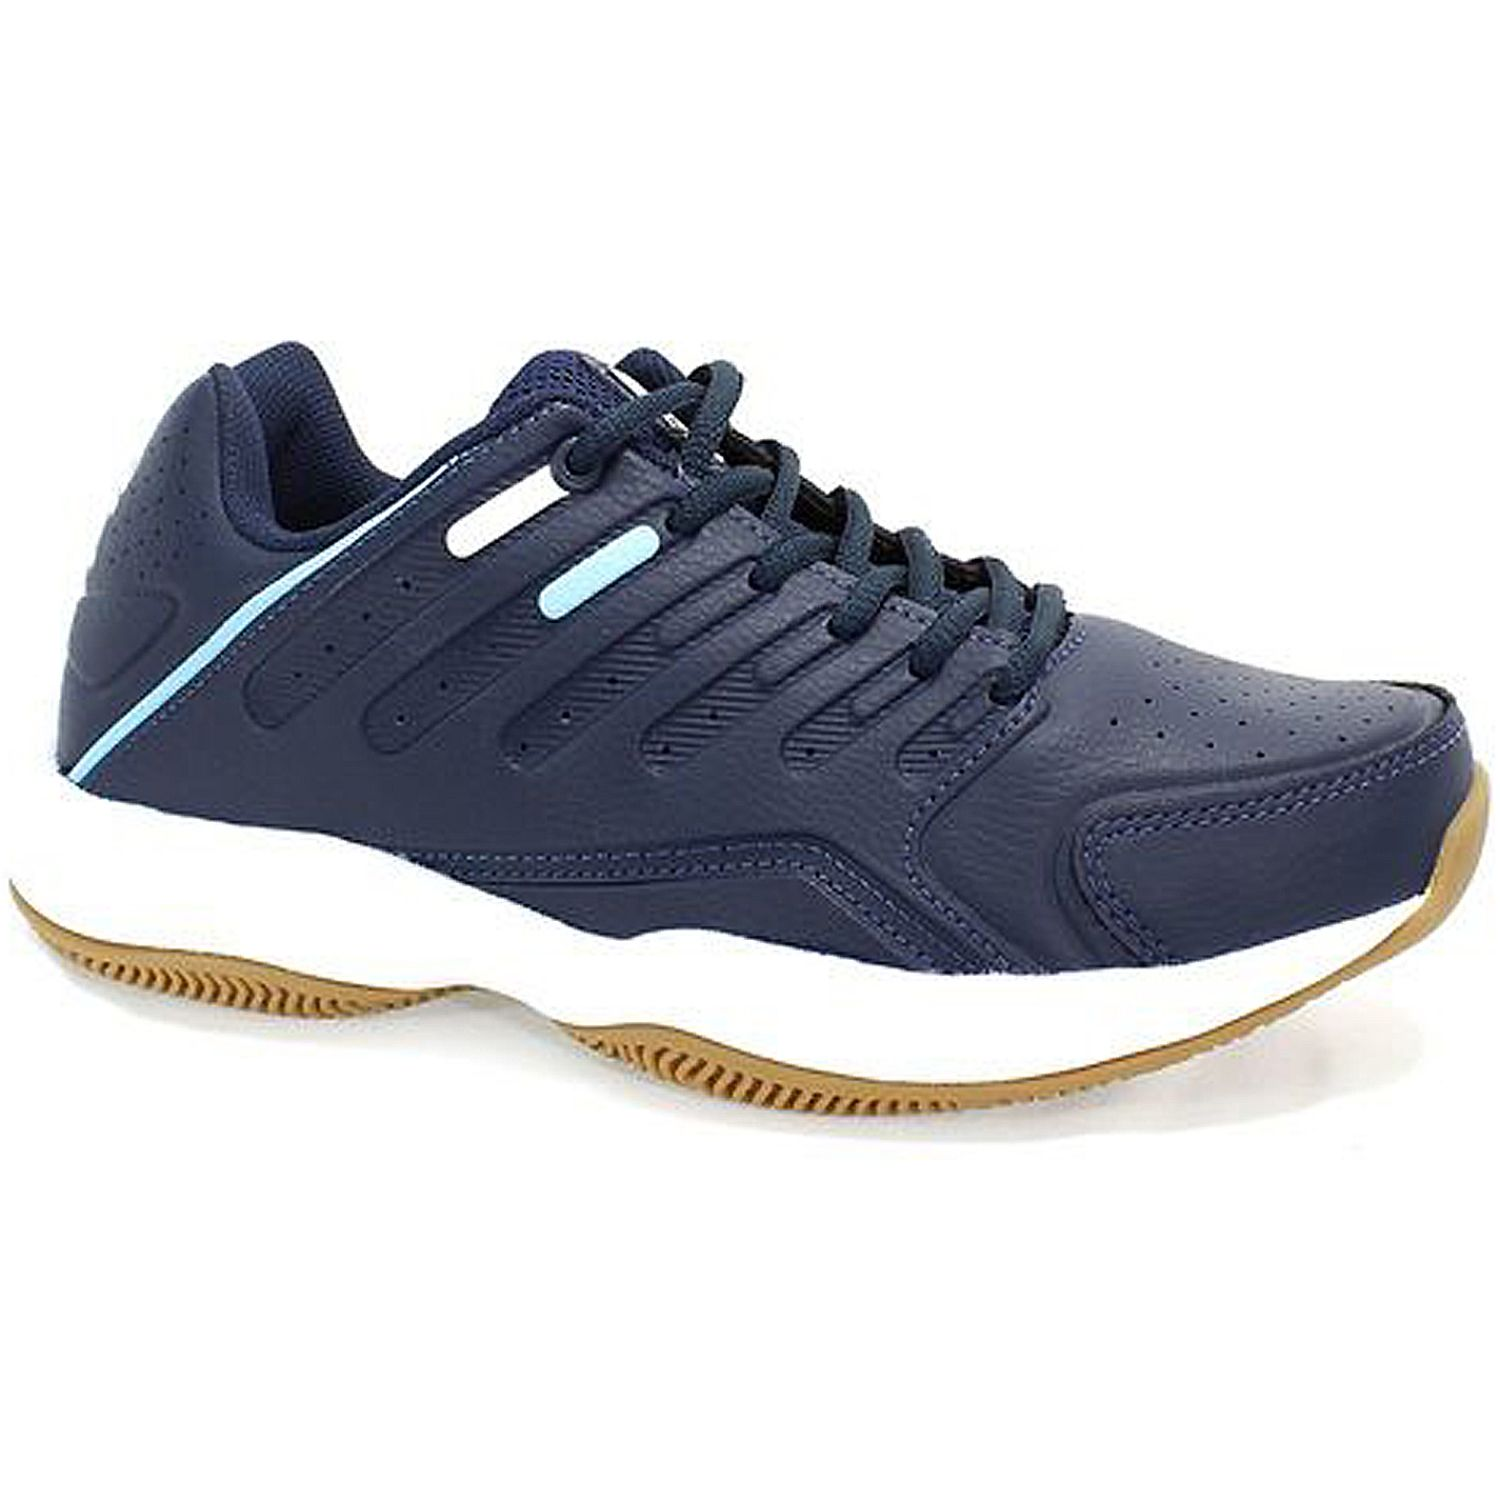 Fila Fila Lugano 6.0 Navy Walking